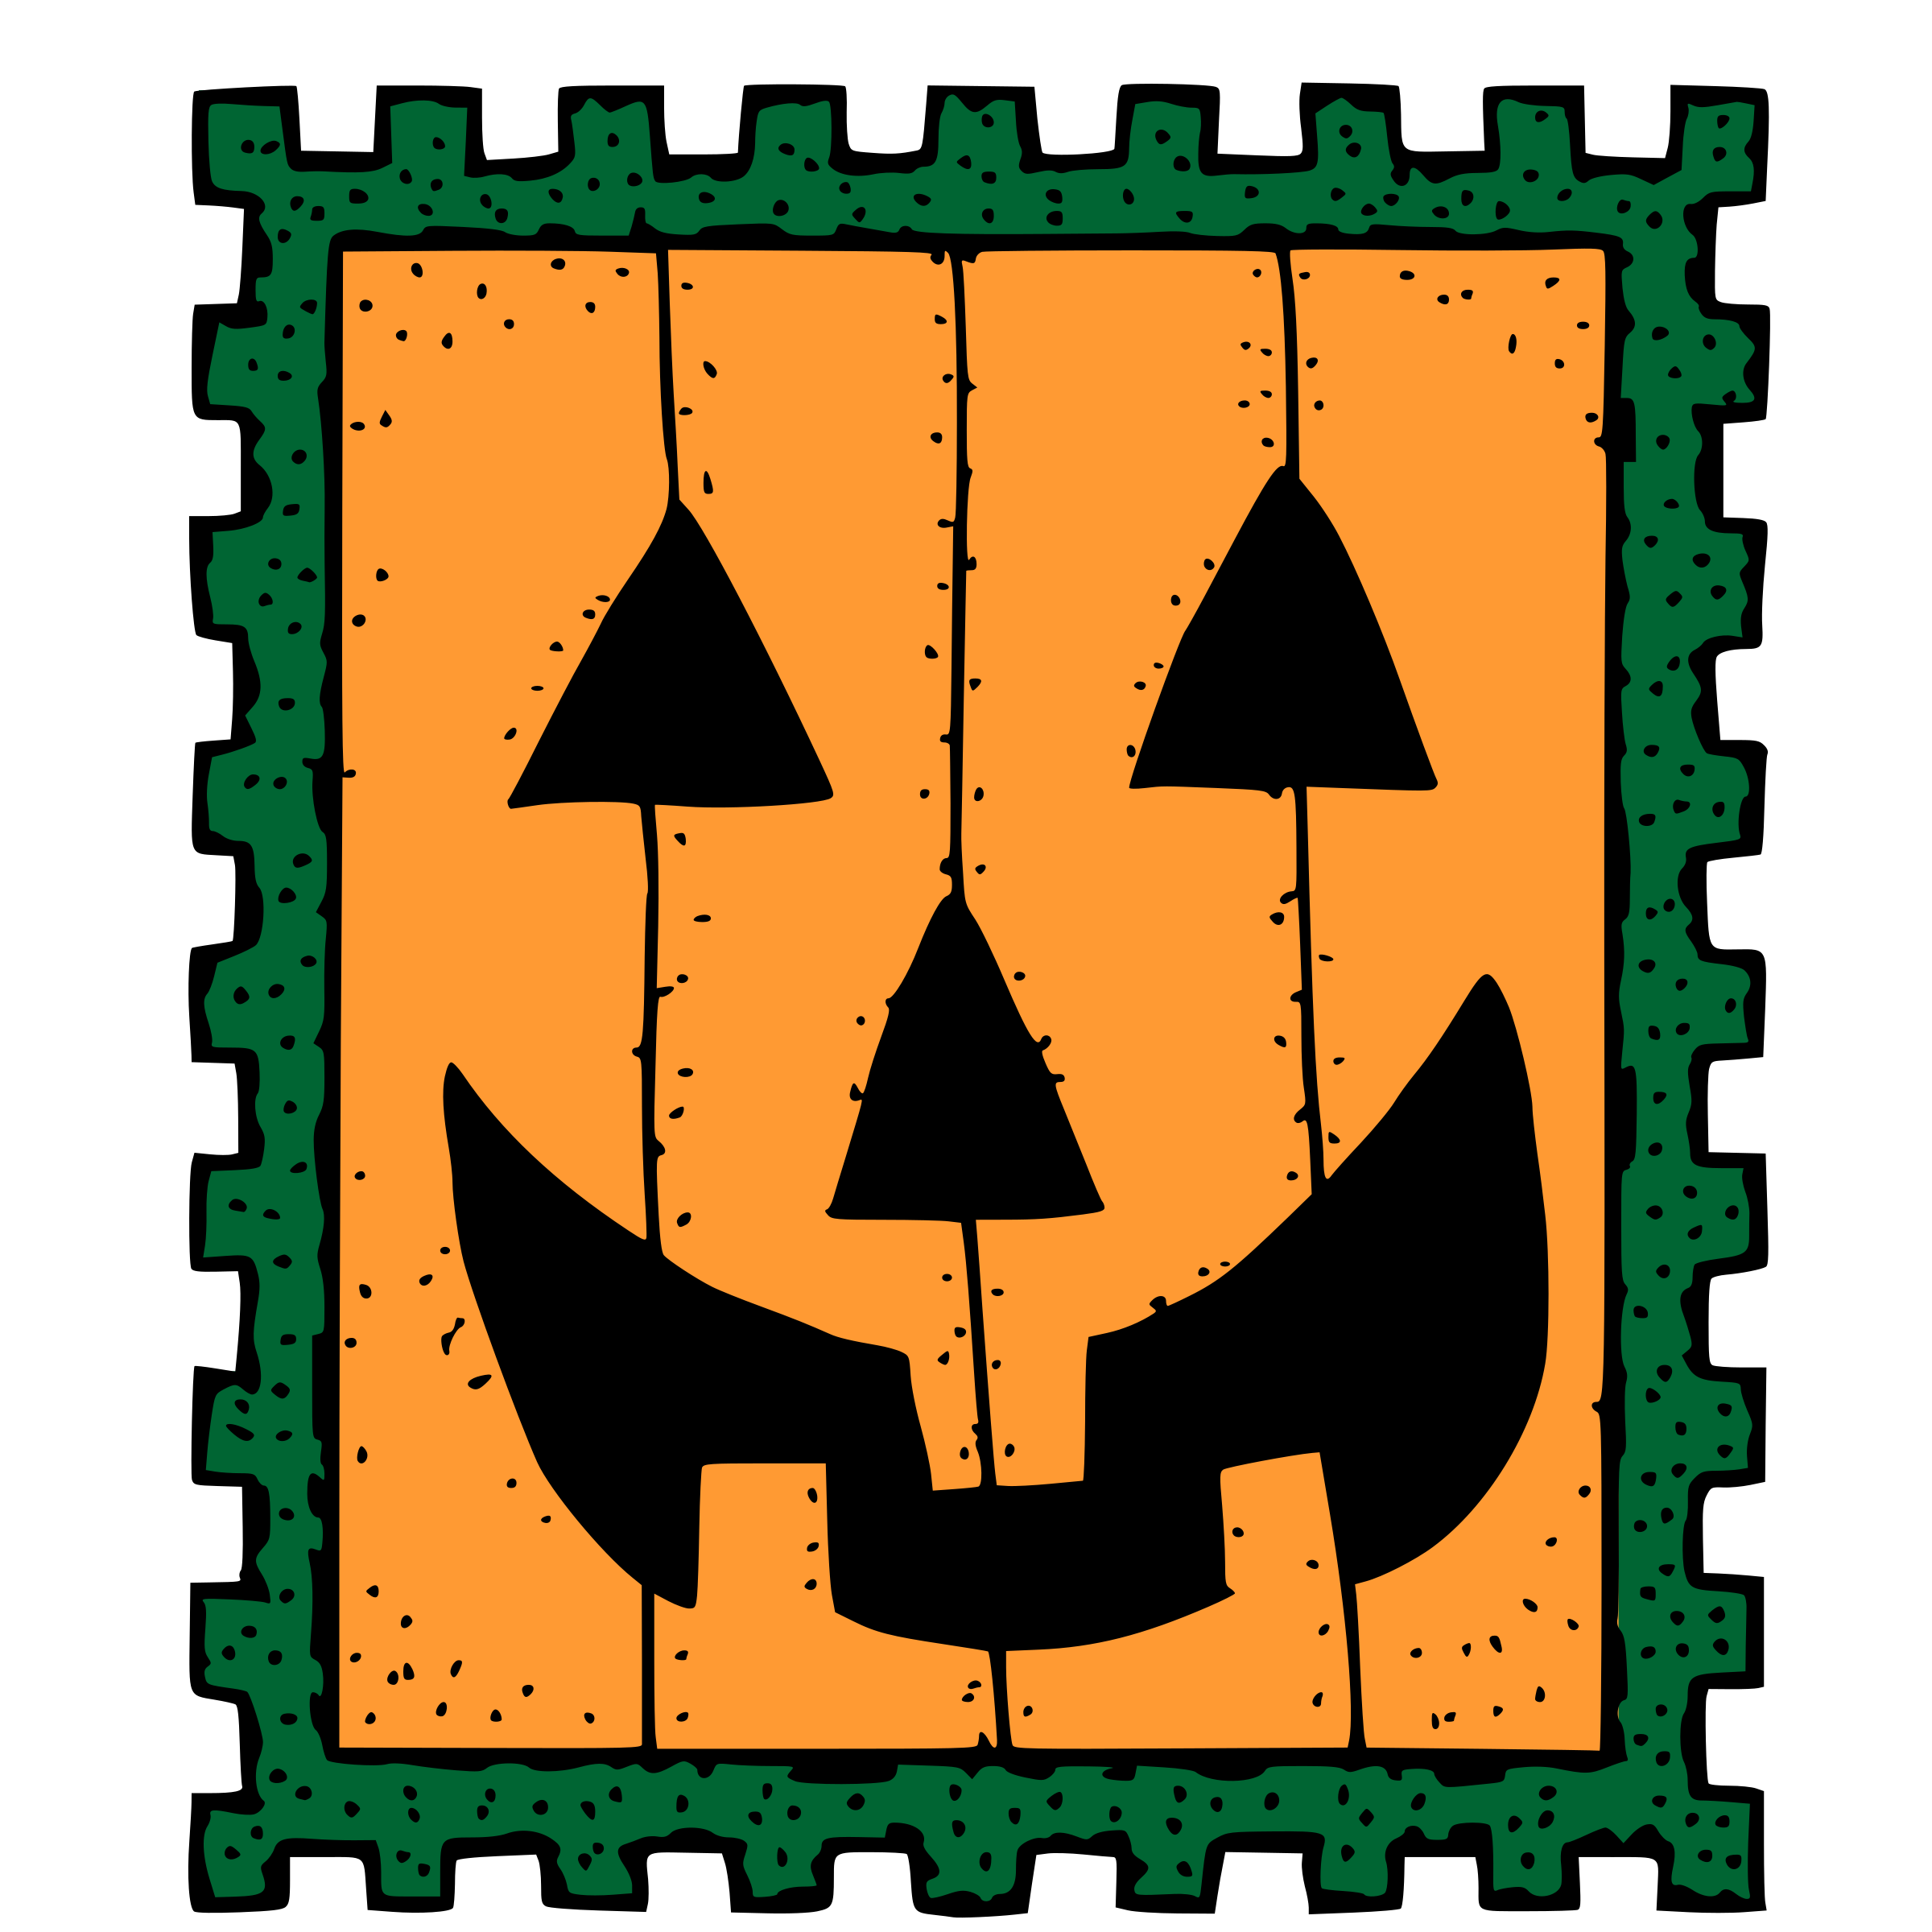 Halloween big image png. Stamp clipart official